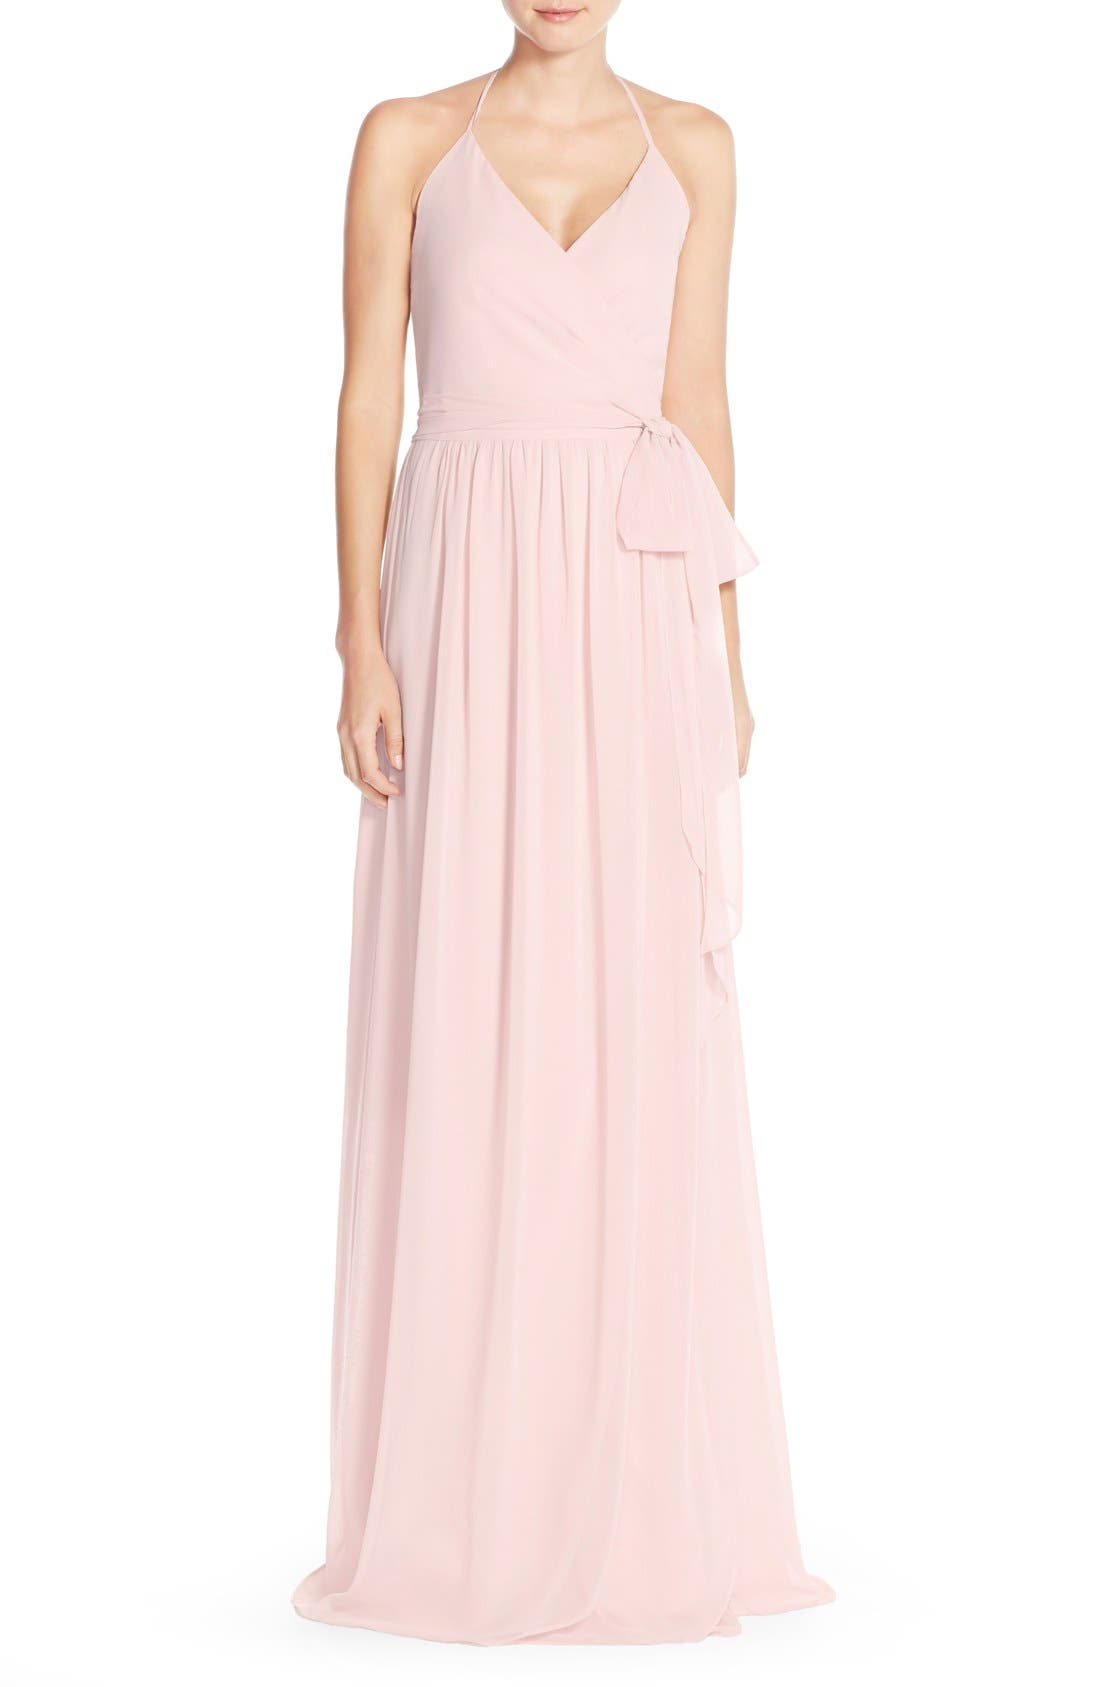 Alternate Image 1 Selected - Ceremony by Joanna August 'DC' Halter Wrap Chiffon Gown